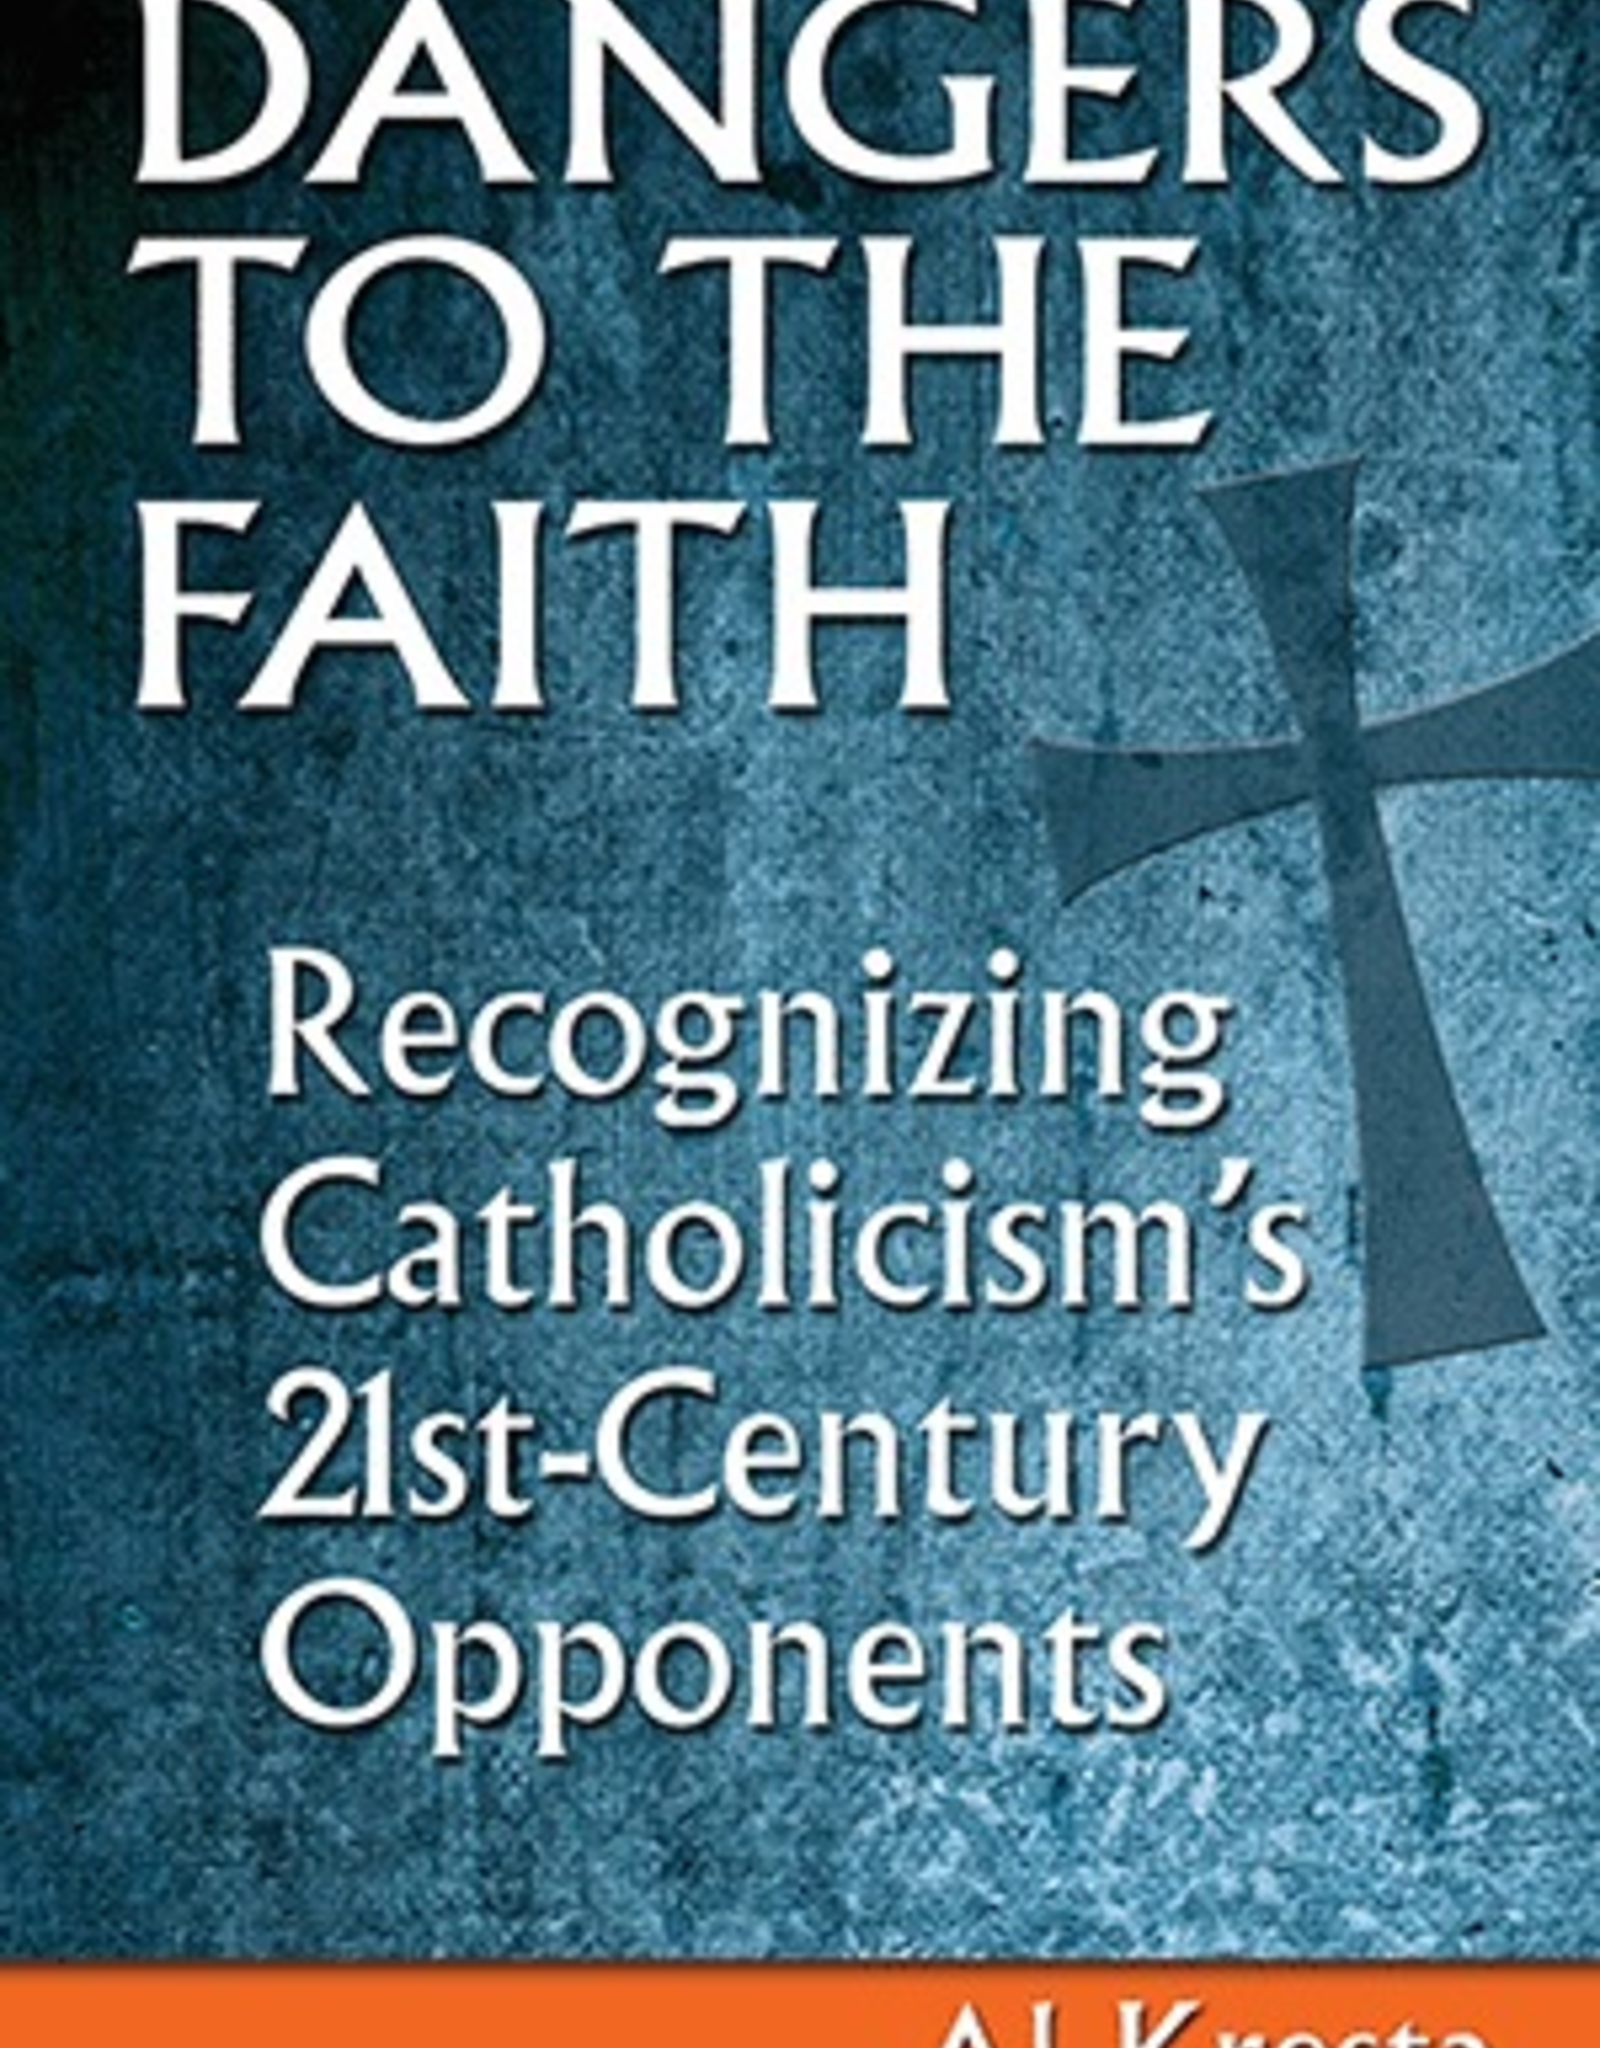 Our Sunday Visitor Dangers to the Faith:  Recognizing Catholicism's Opponents, by Al Kresta (paperback)